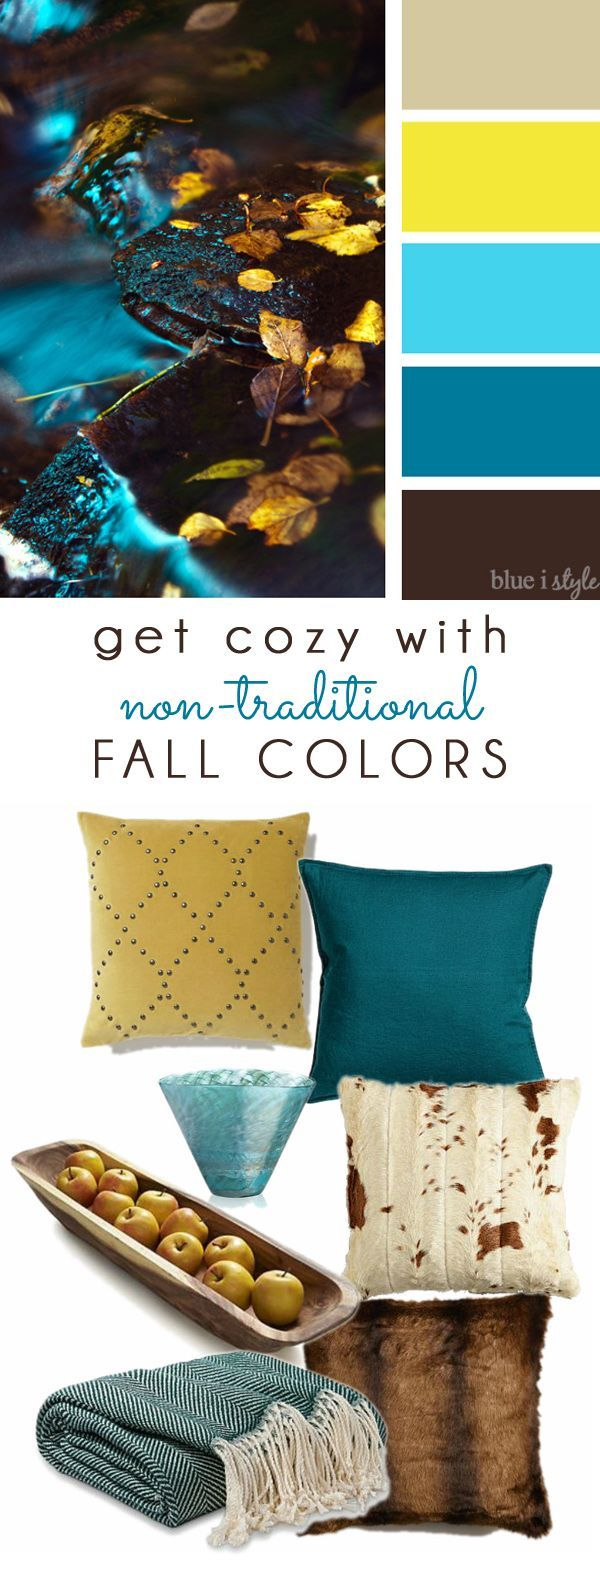 Cozy Fall Colors A Simple Mood Board To Help You Bring These Non Traditional